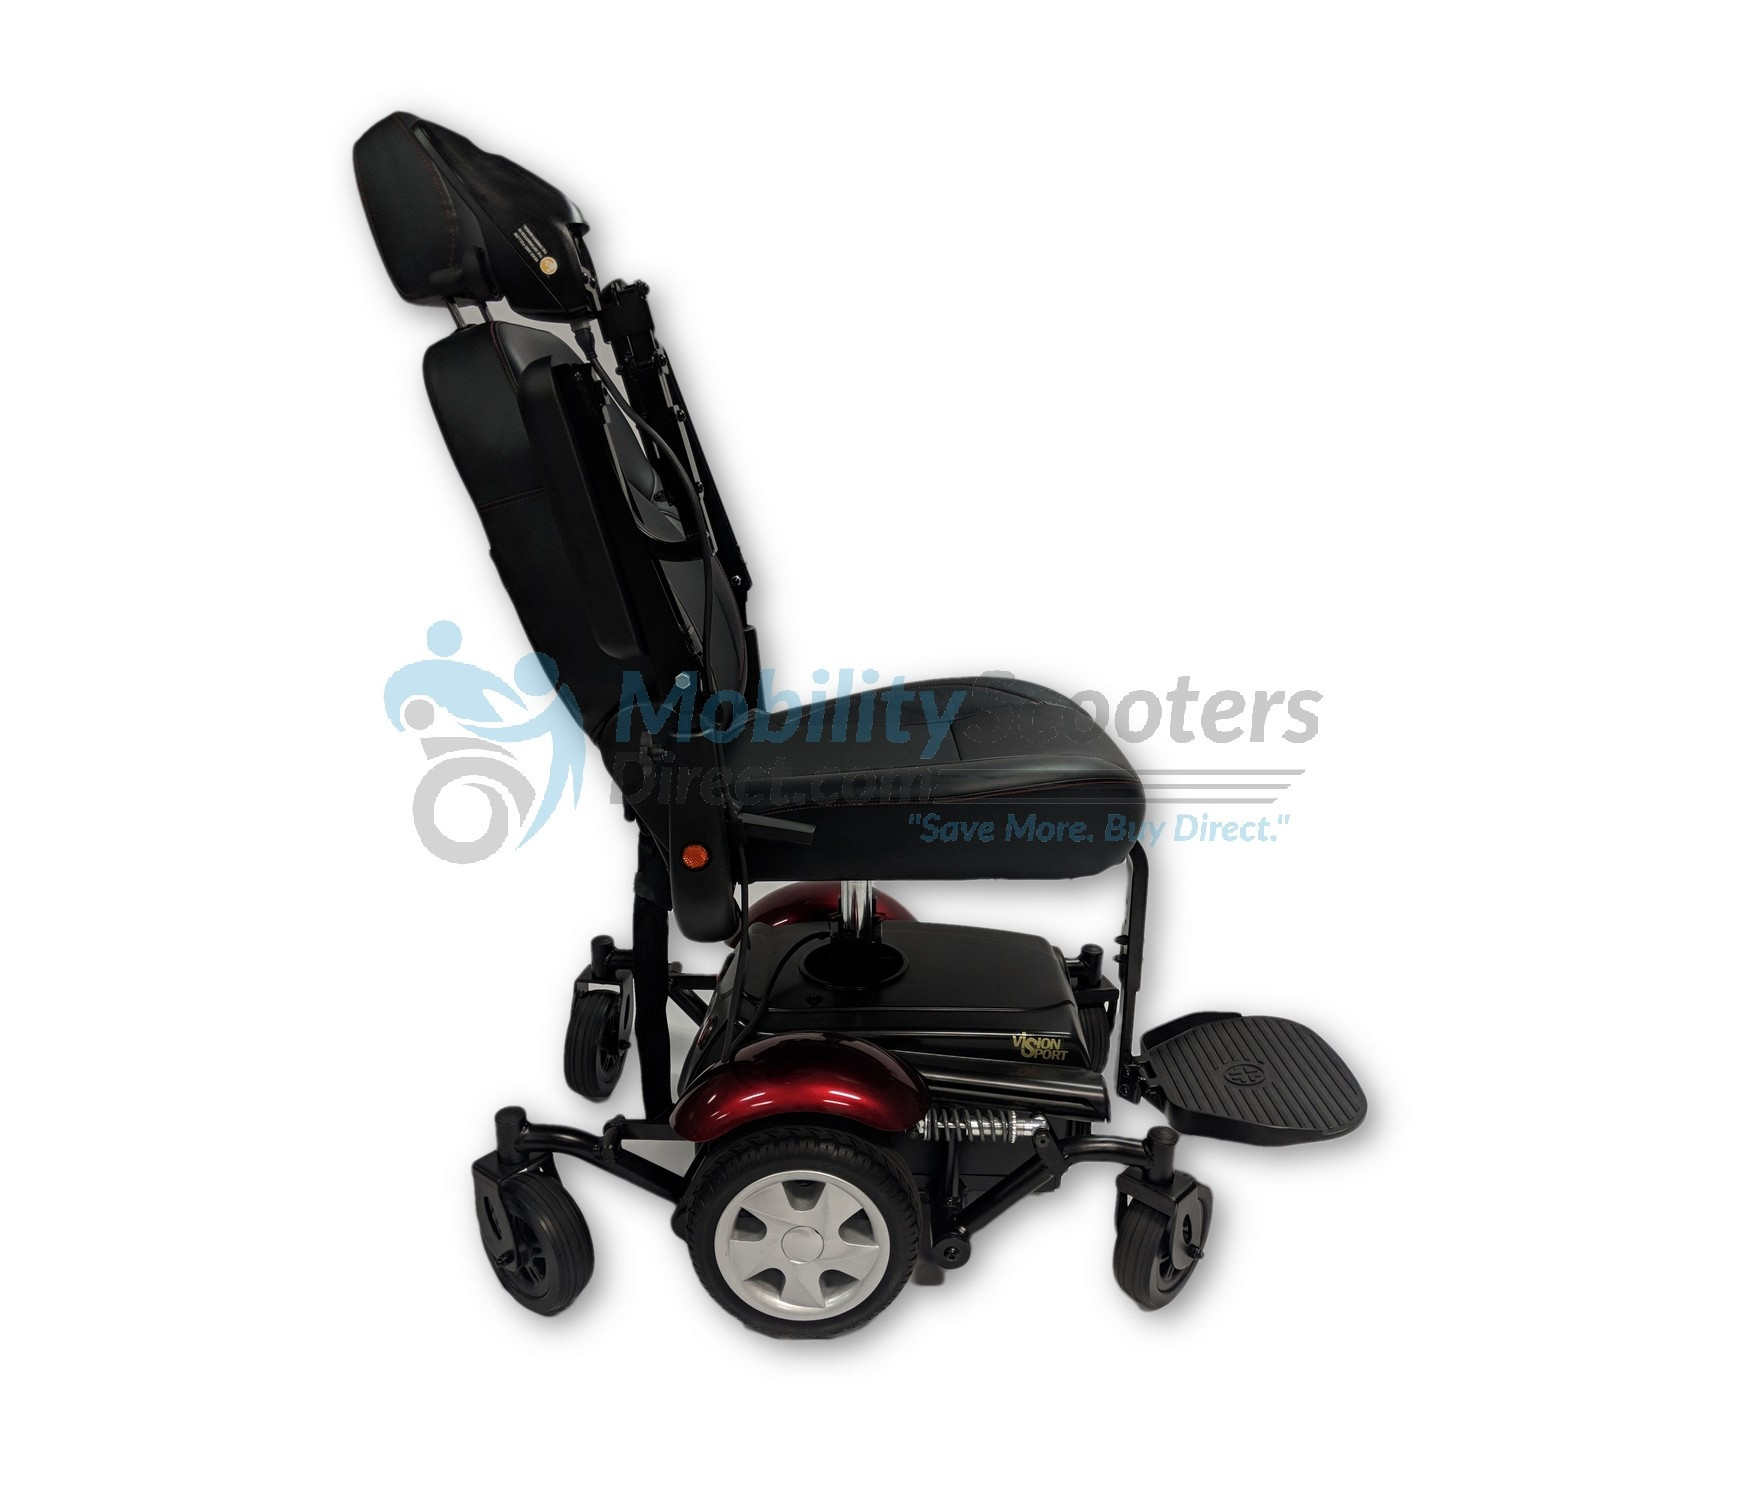 merits power chair 24 inch chairs vision sport wheelchair for sale lowest prices